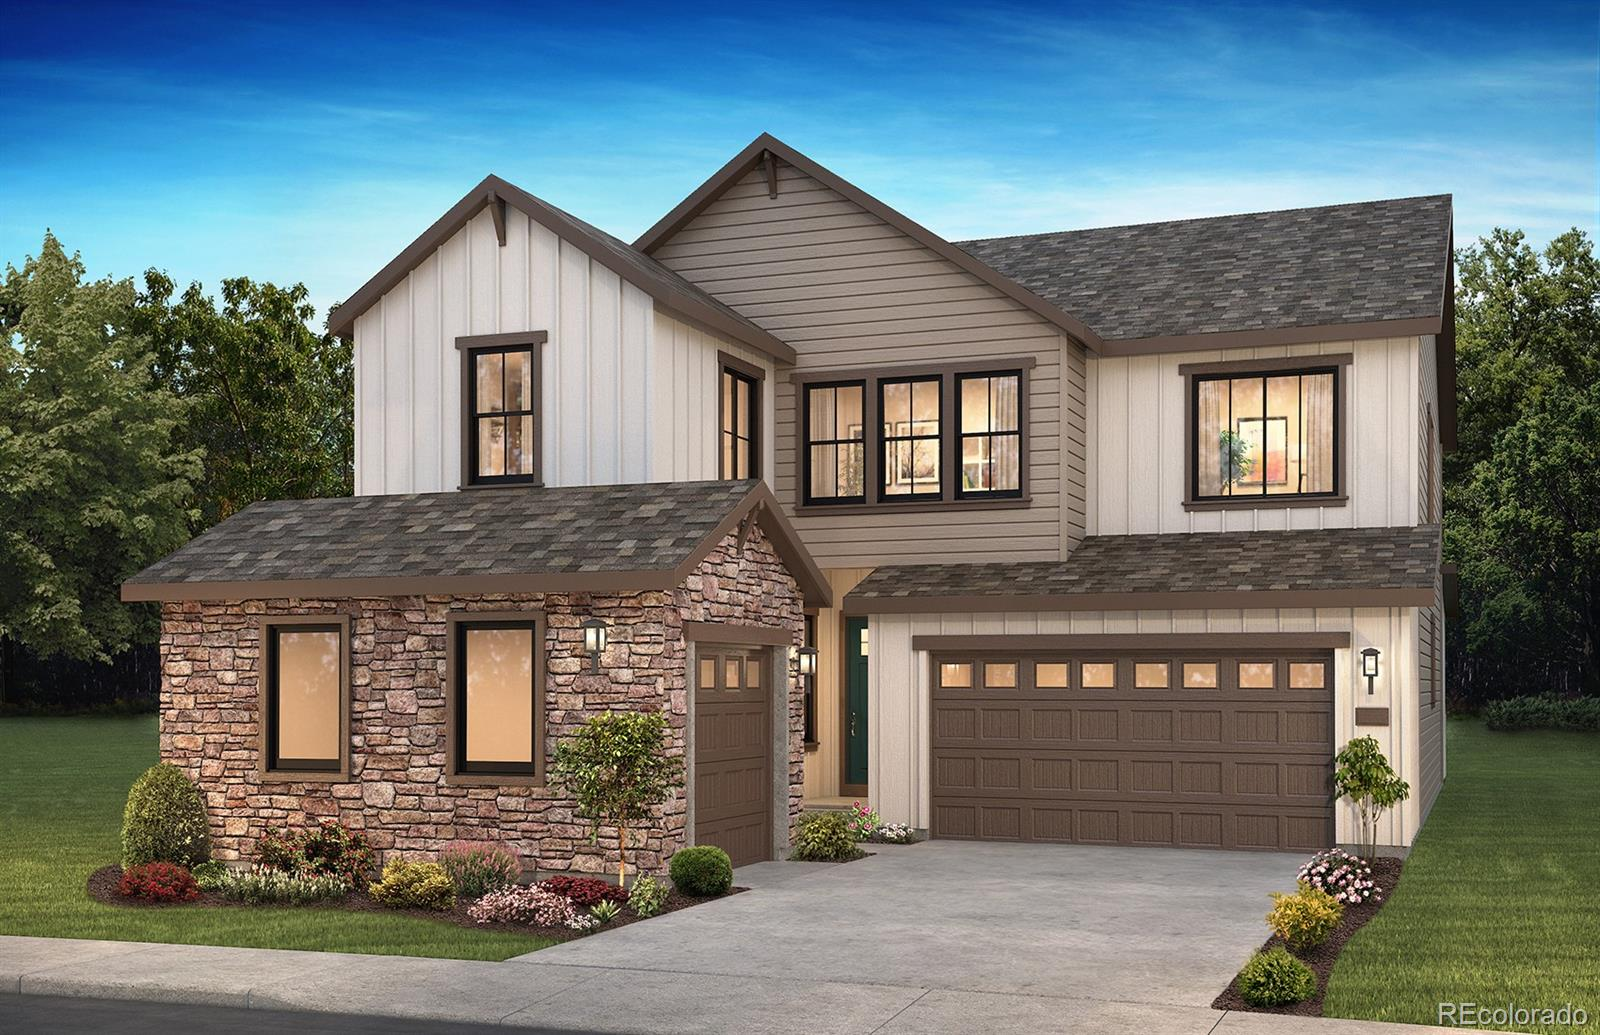 Available August/September 2020!  Located in the brand new Solstice community on a corner home site, this stunning Open Sky 2-story home features 5 bedrooms (4 upper / 1 main), 4.5 baths, loft, great room, dining room, kitchen, flex room, unfinished basement and 3 car garage.  Beautiful design finishes and upgrades throughout include large kitchen with island, walk-in pantry &  GE Cafe stainless steel appliances; Craftsman stair rails; Great room with cosmo fireplace; Owner's entry with bench; Optional master bath with shower, tub and barn door; Covered patio and garage service door; Second floor laundry with sink and so much more. Energy Star Certified. This stunning home thoughtfully combines elegance and luxury and energy efficiency. Don't miss your opportunity. Welcome Home!